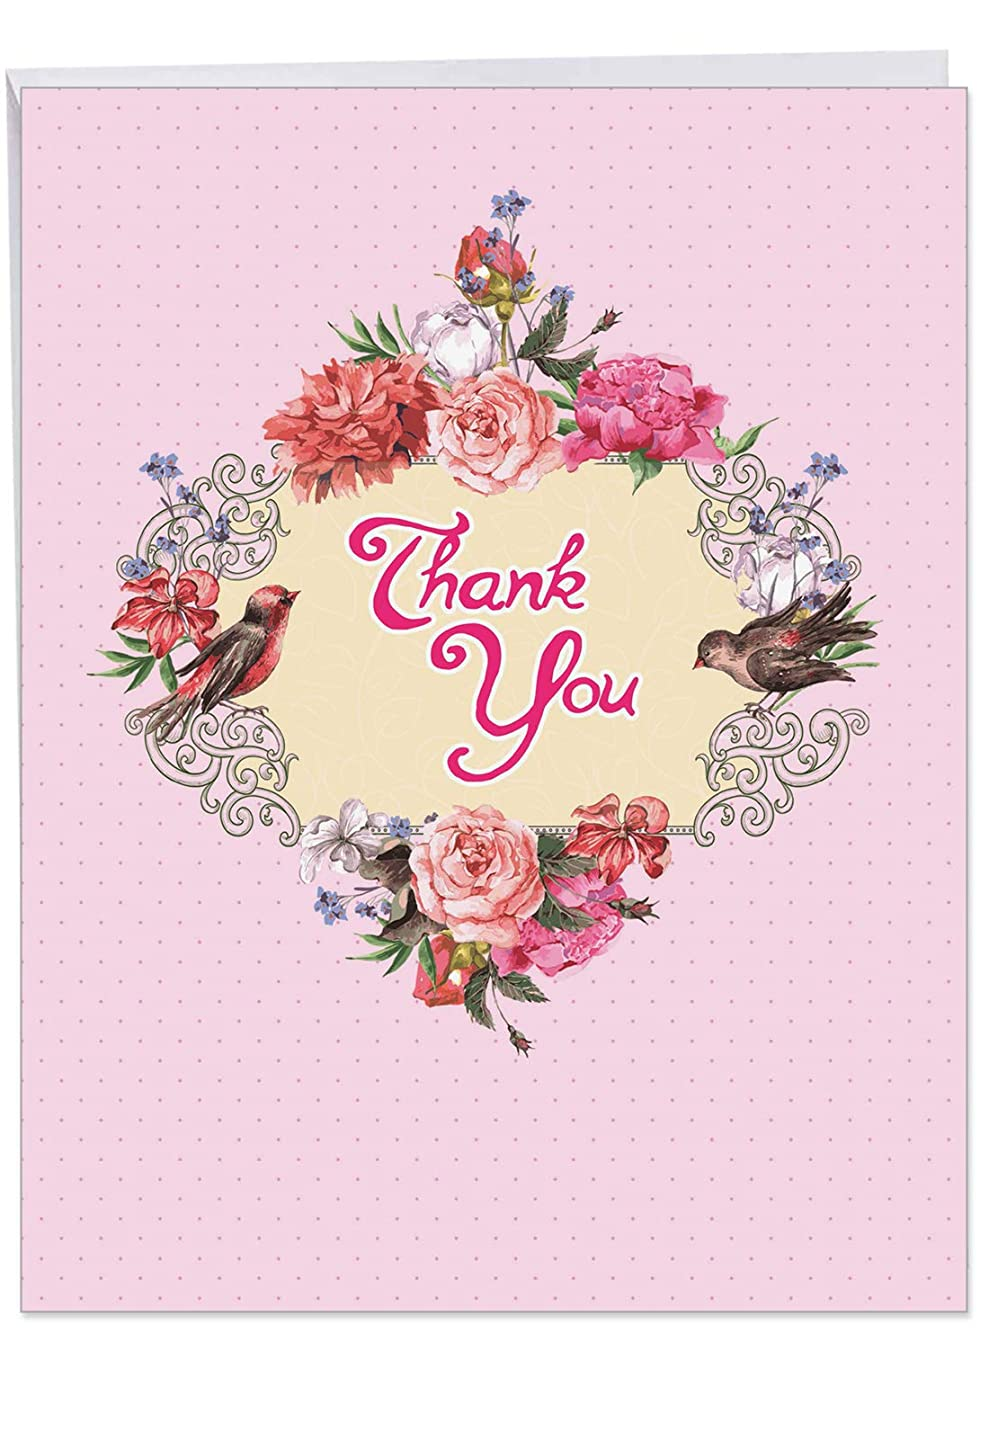 Birds and Blossoms' XL Thank You Card With Envelope 8.5 x 11 Inch Cards with Bright Floral Wreath and Cute Birds, Large Appreciation Greeting for Family, Friends and Women of All Ages J6577GTYG